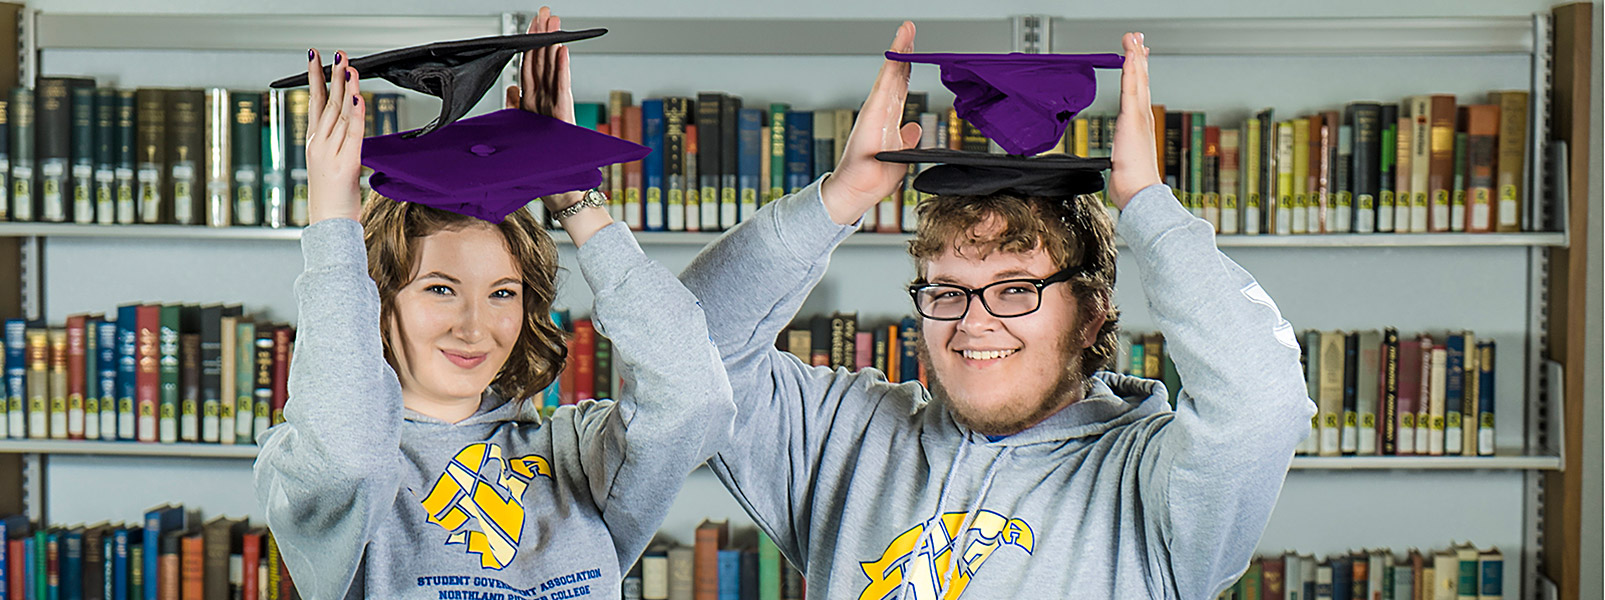 two students holding two graduation caps each